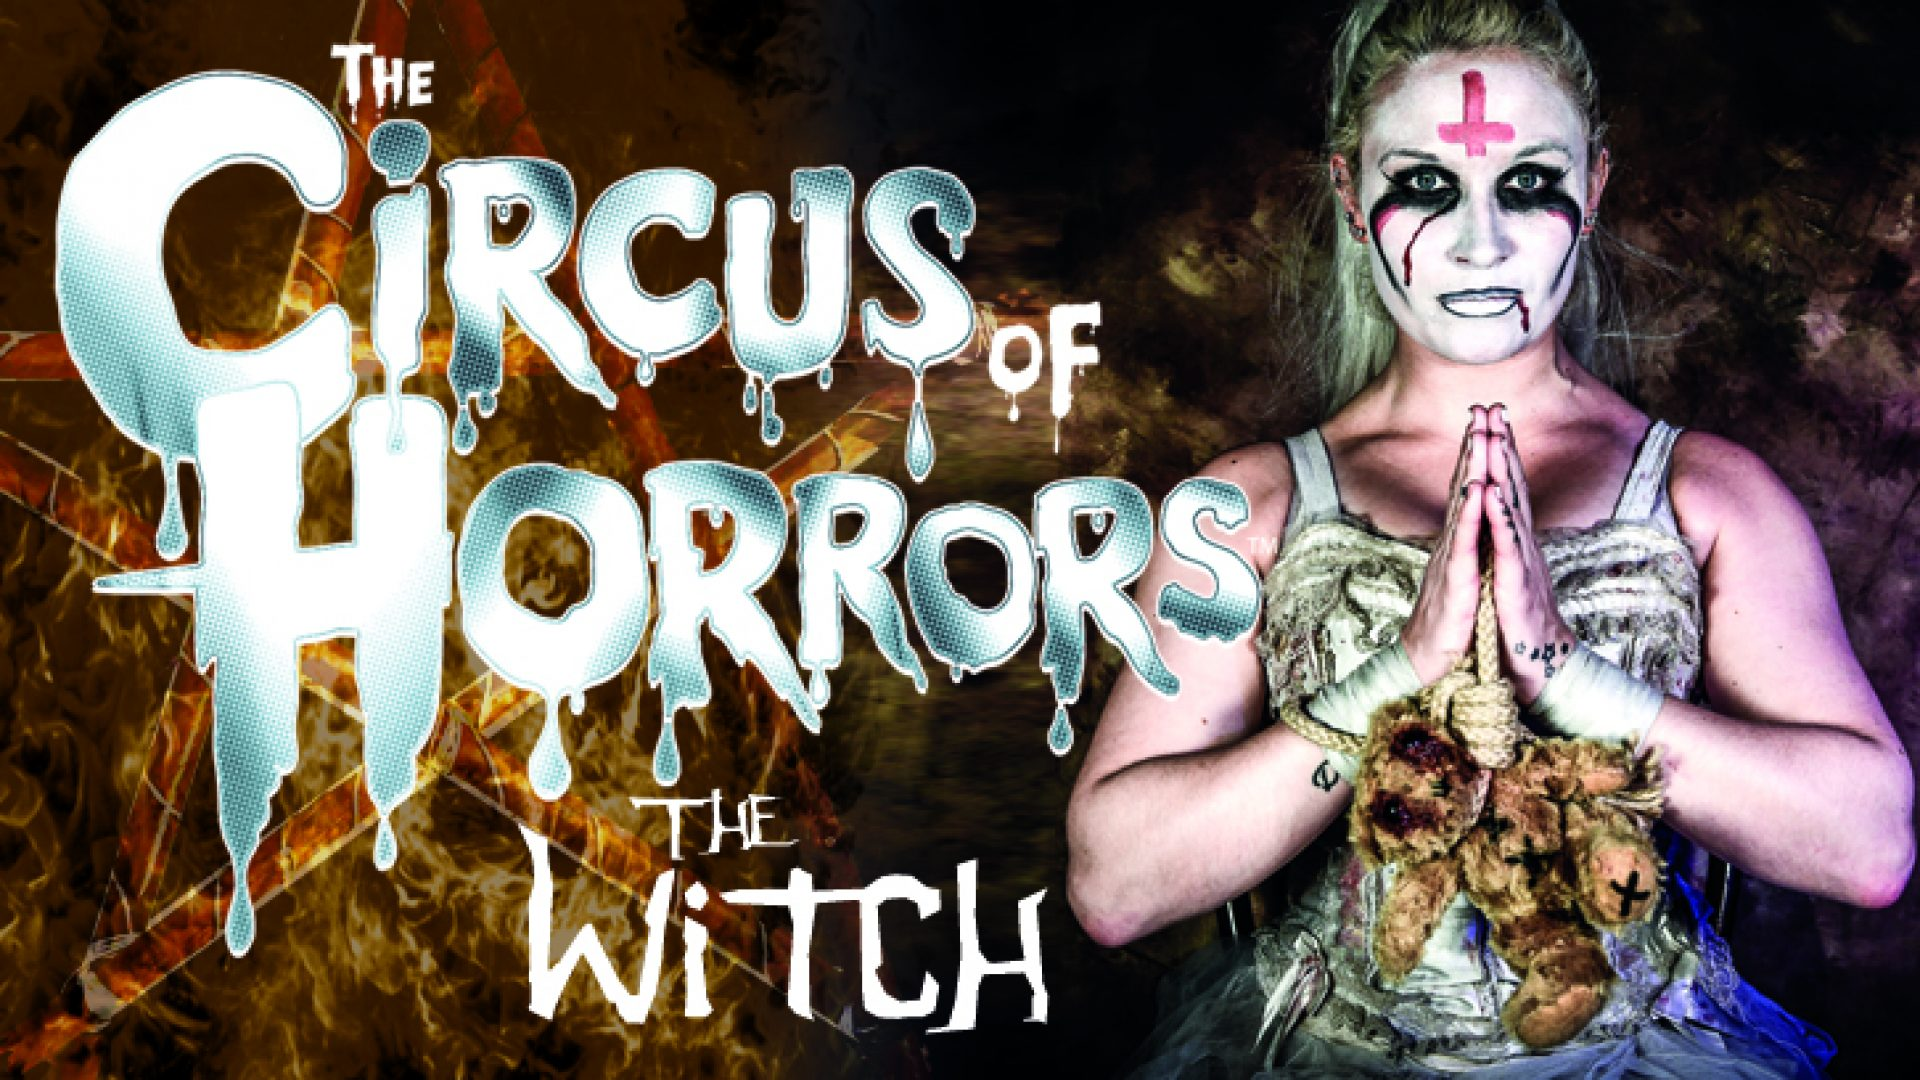 The Circus of Horrors: The Witch